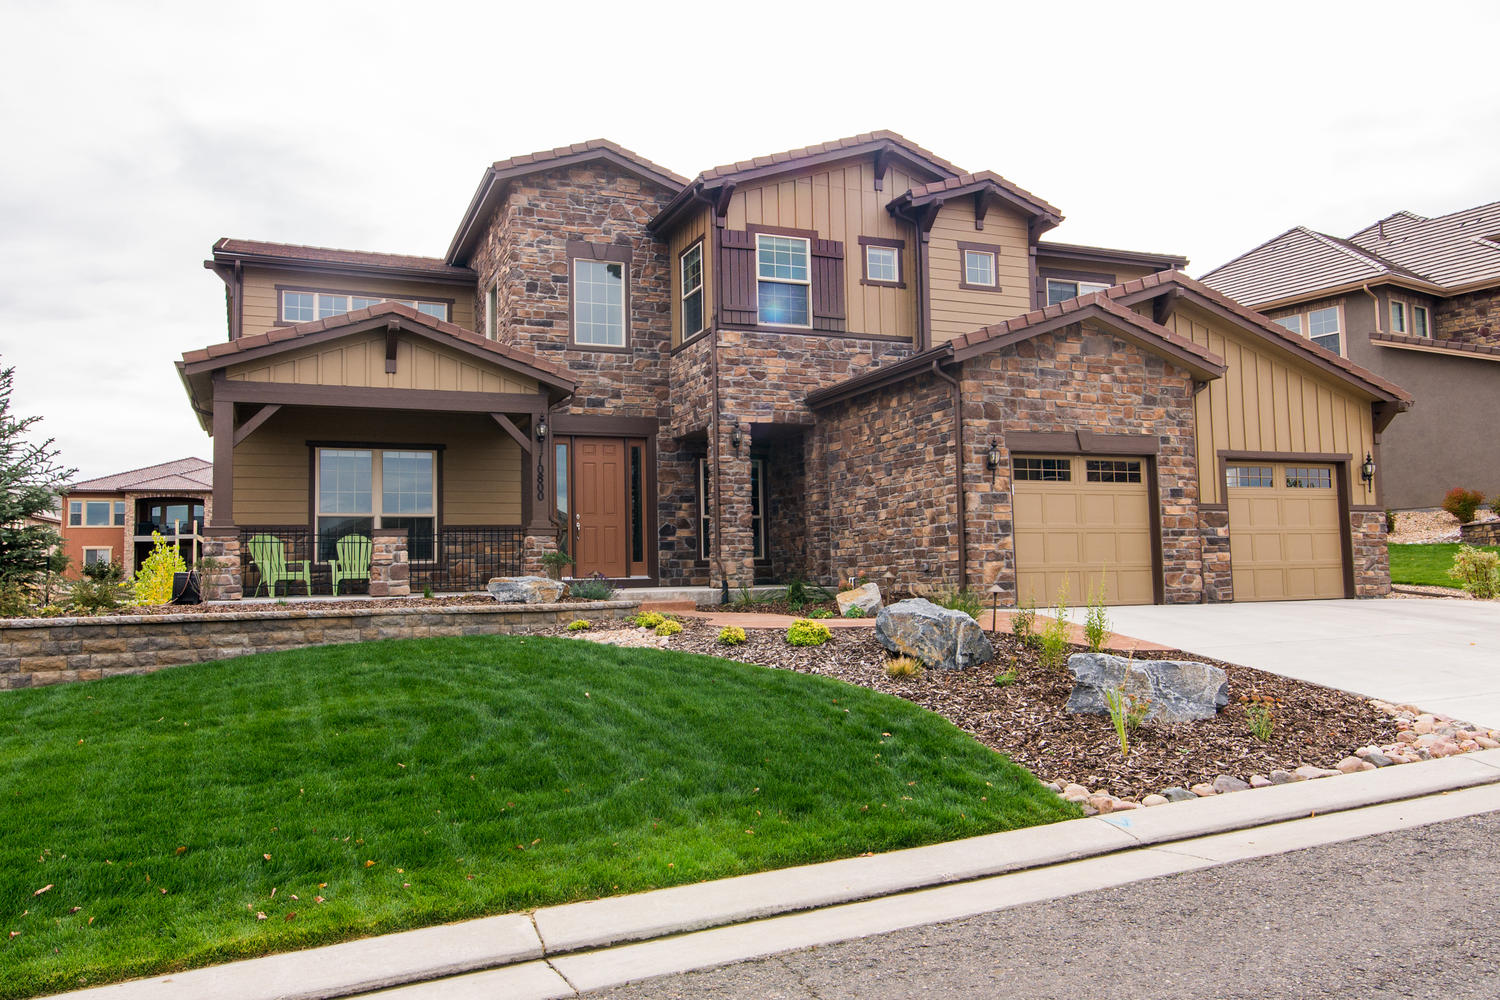 Single Family Home for Active at Beautiful Bella built by the Toll Brothers in 2013 10800 Sundial Rim Rd Highlands Ranch, Colorado 80126 United States